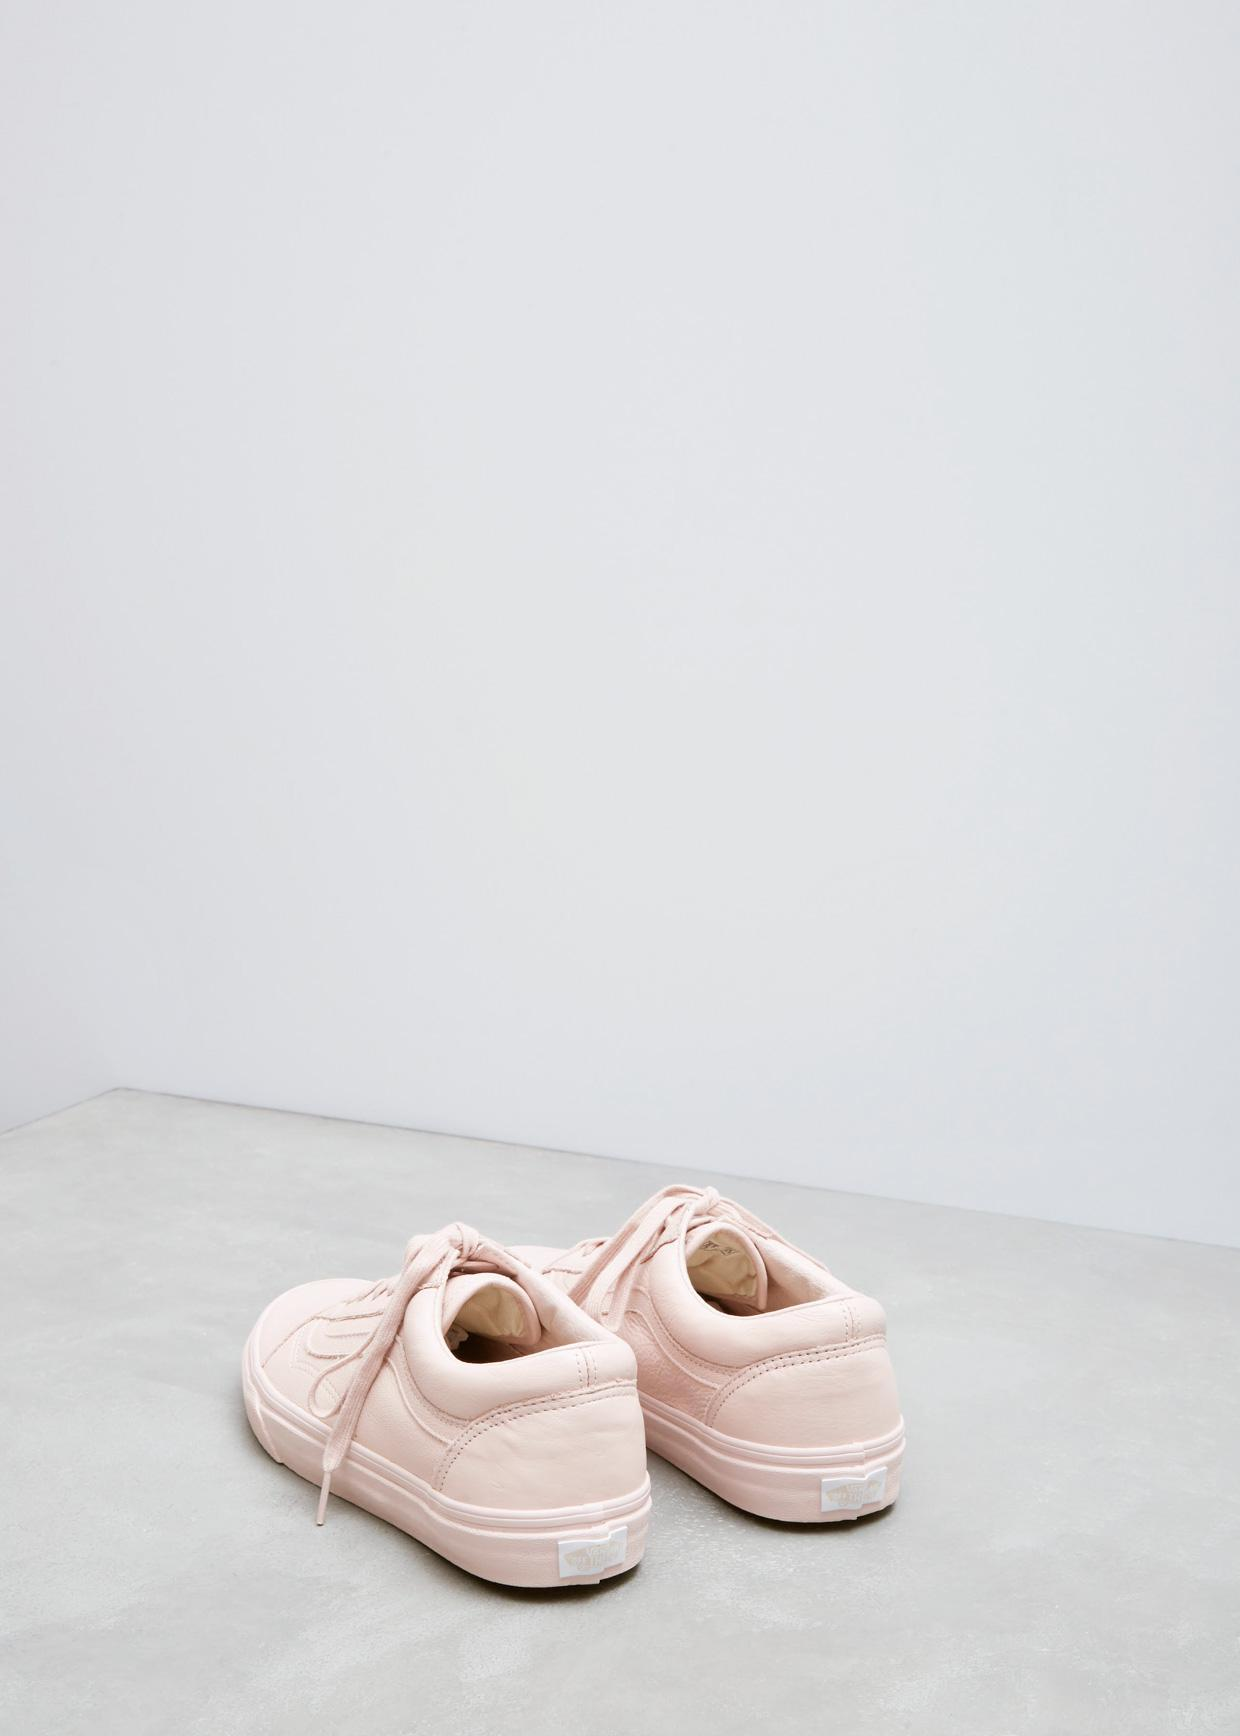 bbc6a29d9eb Lyst - Vans Sepia Rose Mono Leather Ua Old Skool in Pink